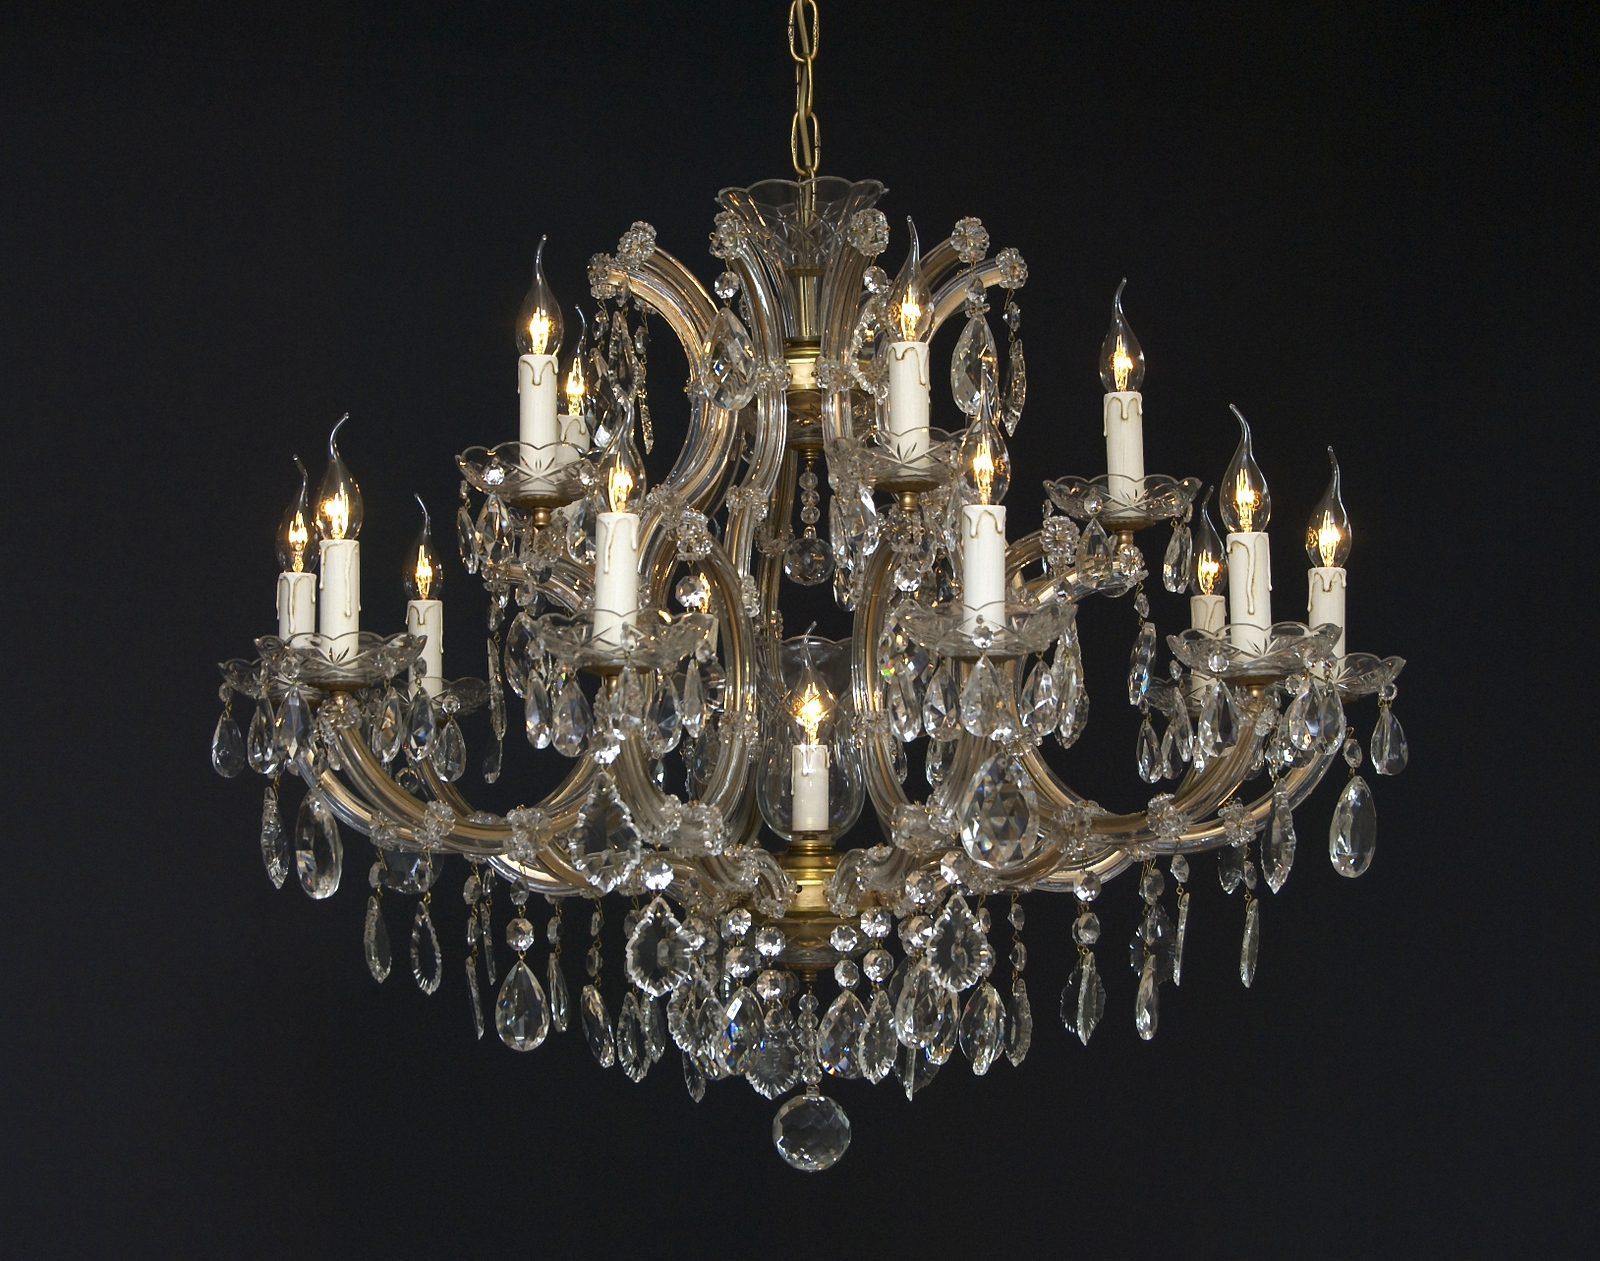 A 20th century crystal glass chandelier with 16 light